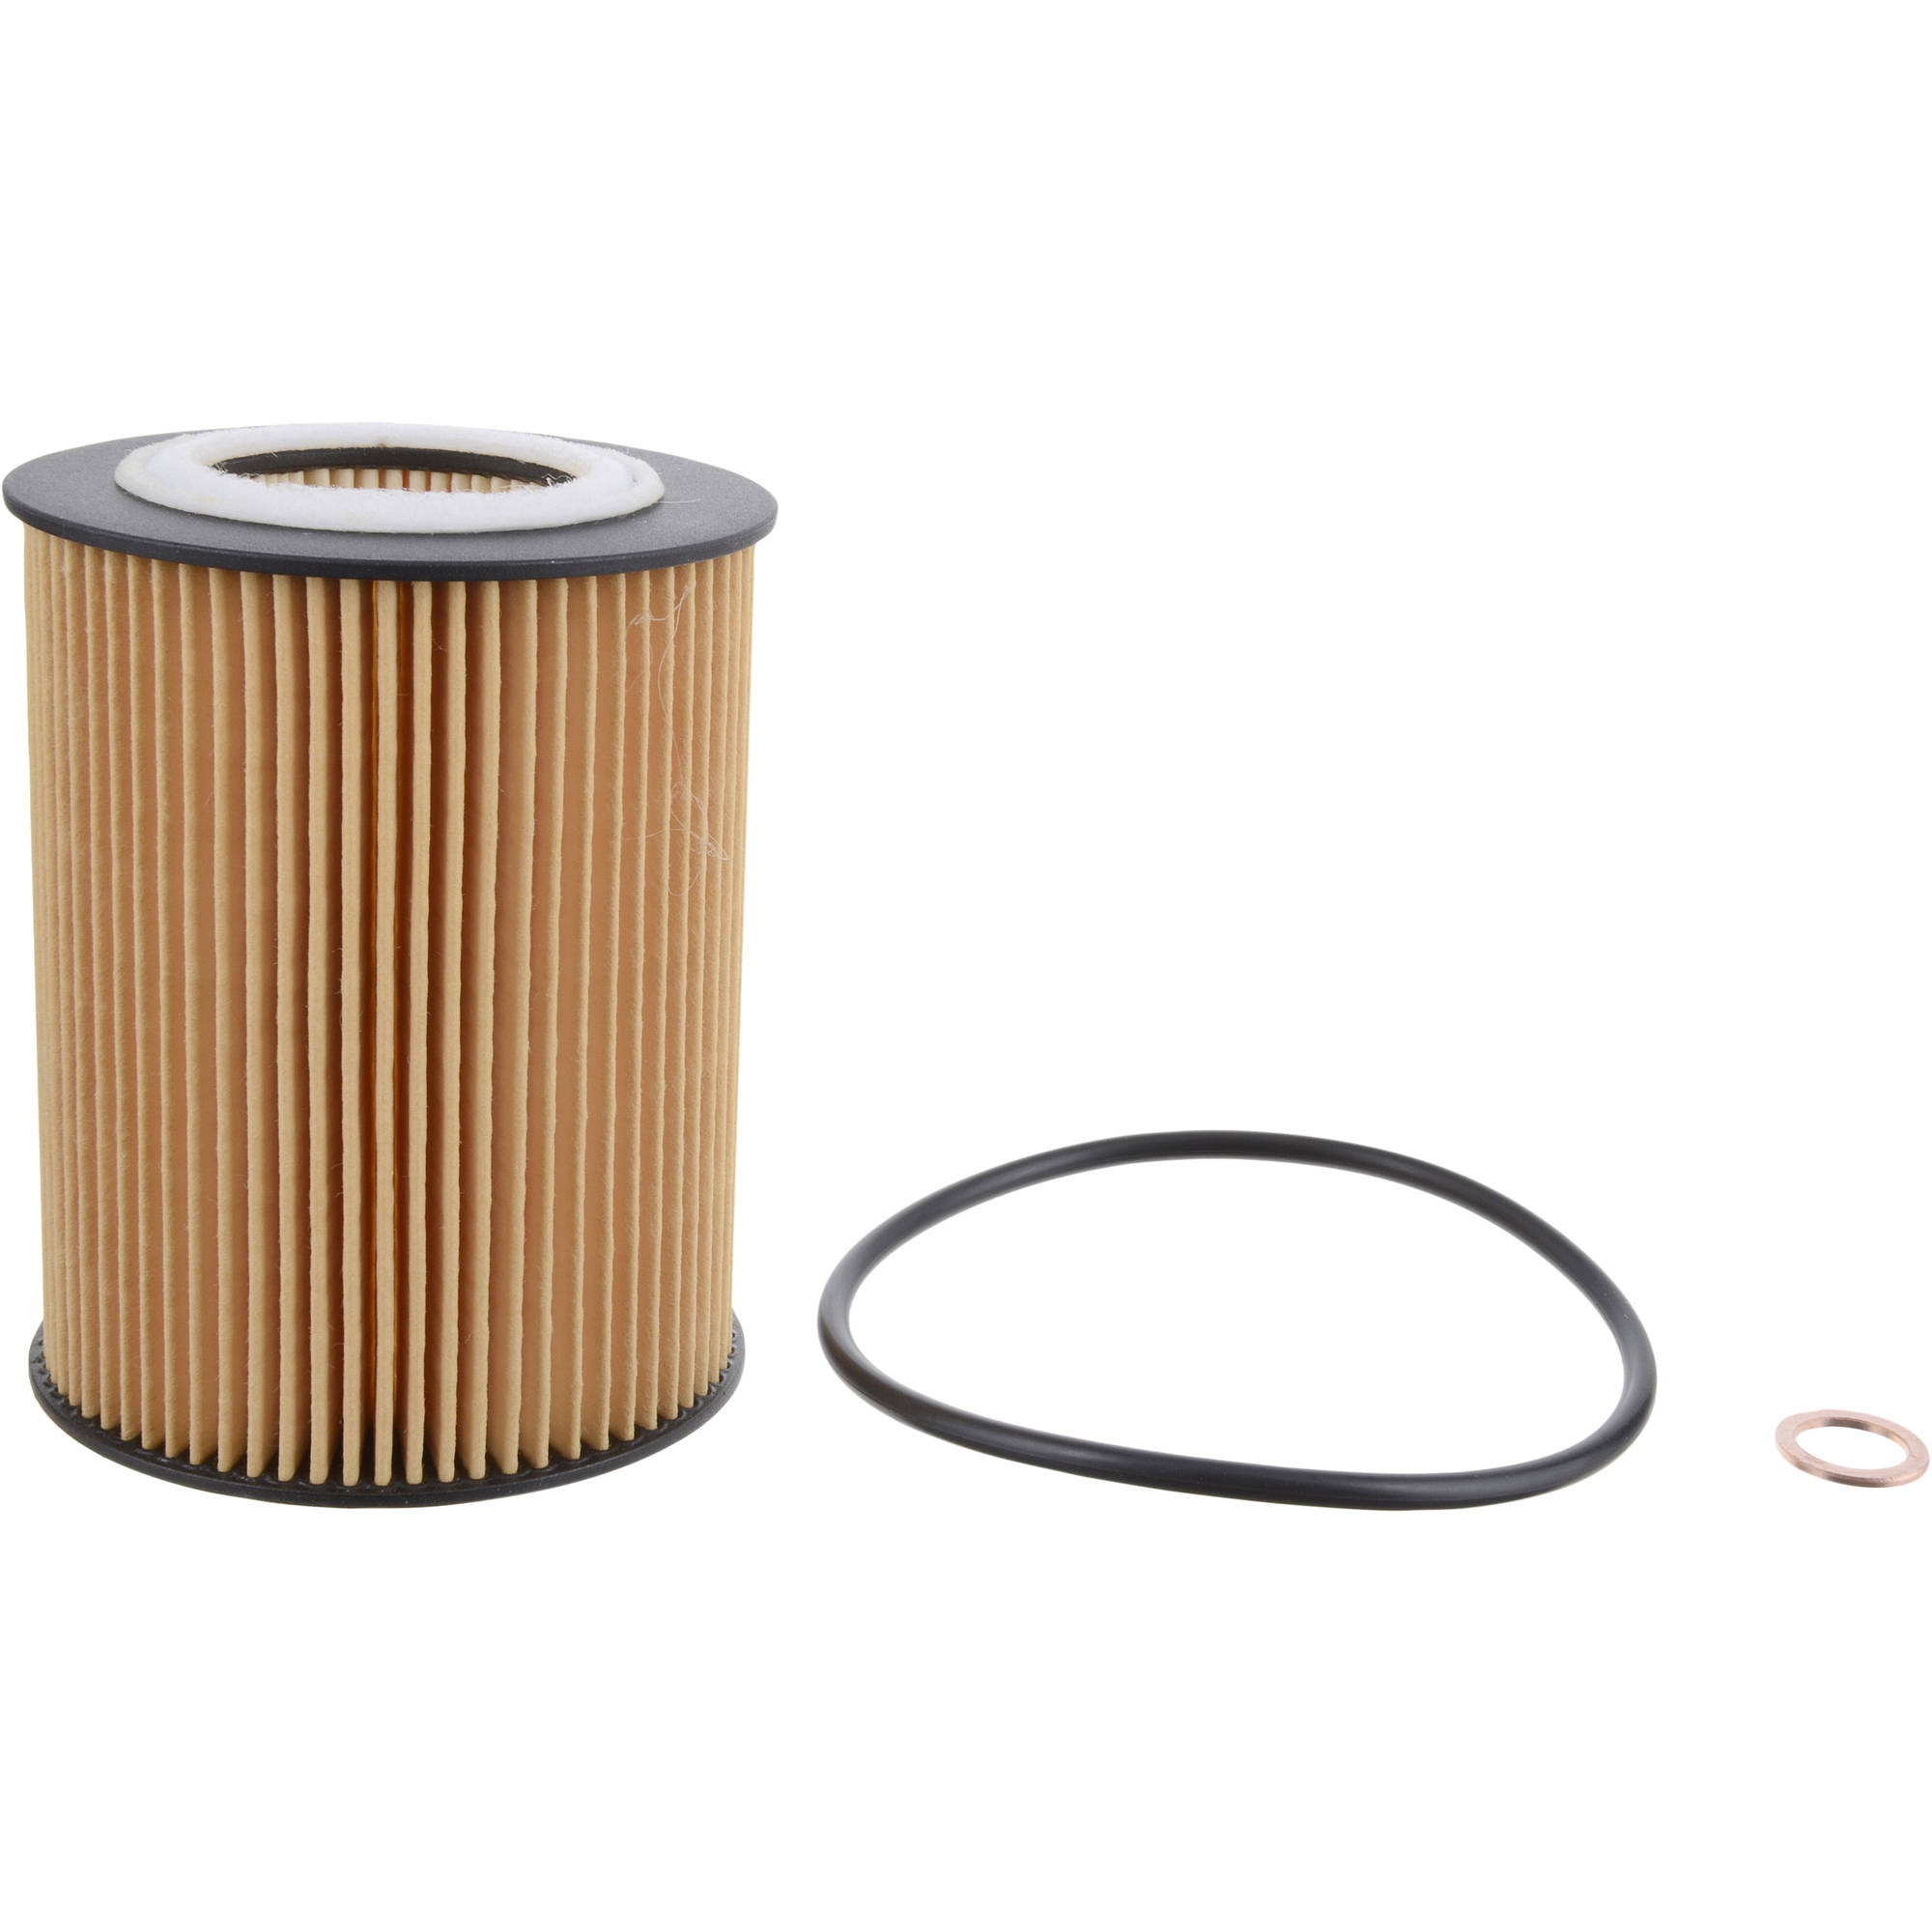 Walmart Oil Filter Finder >> FRAM Extra Guard Oil Filter, CH8081 - Walmart.com